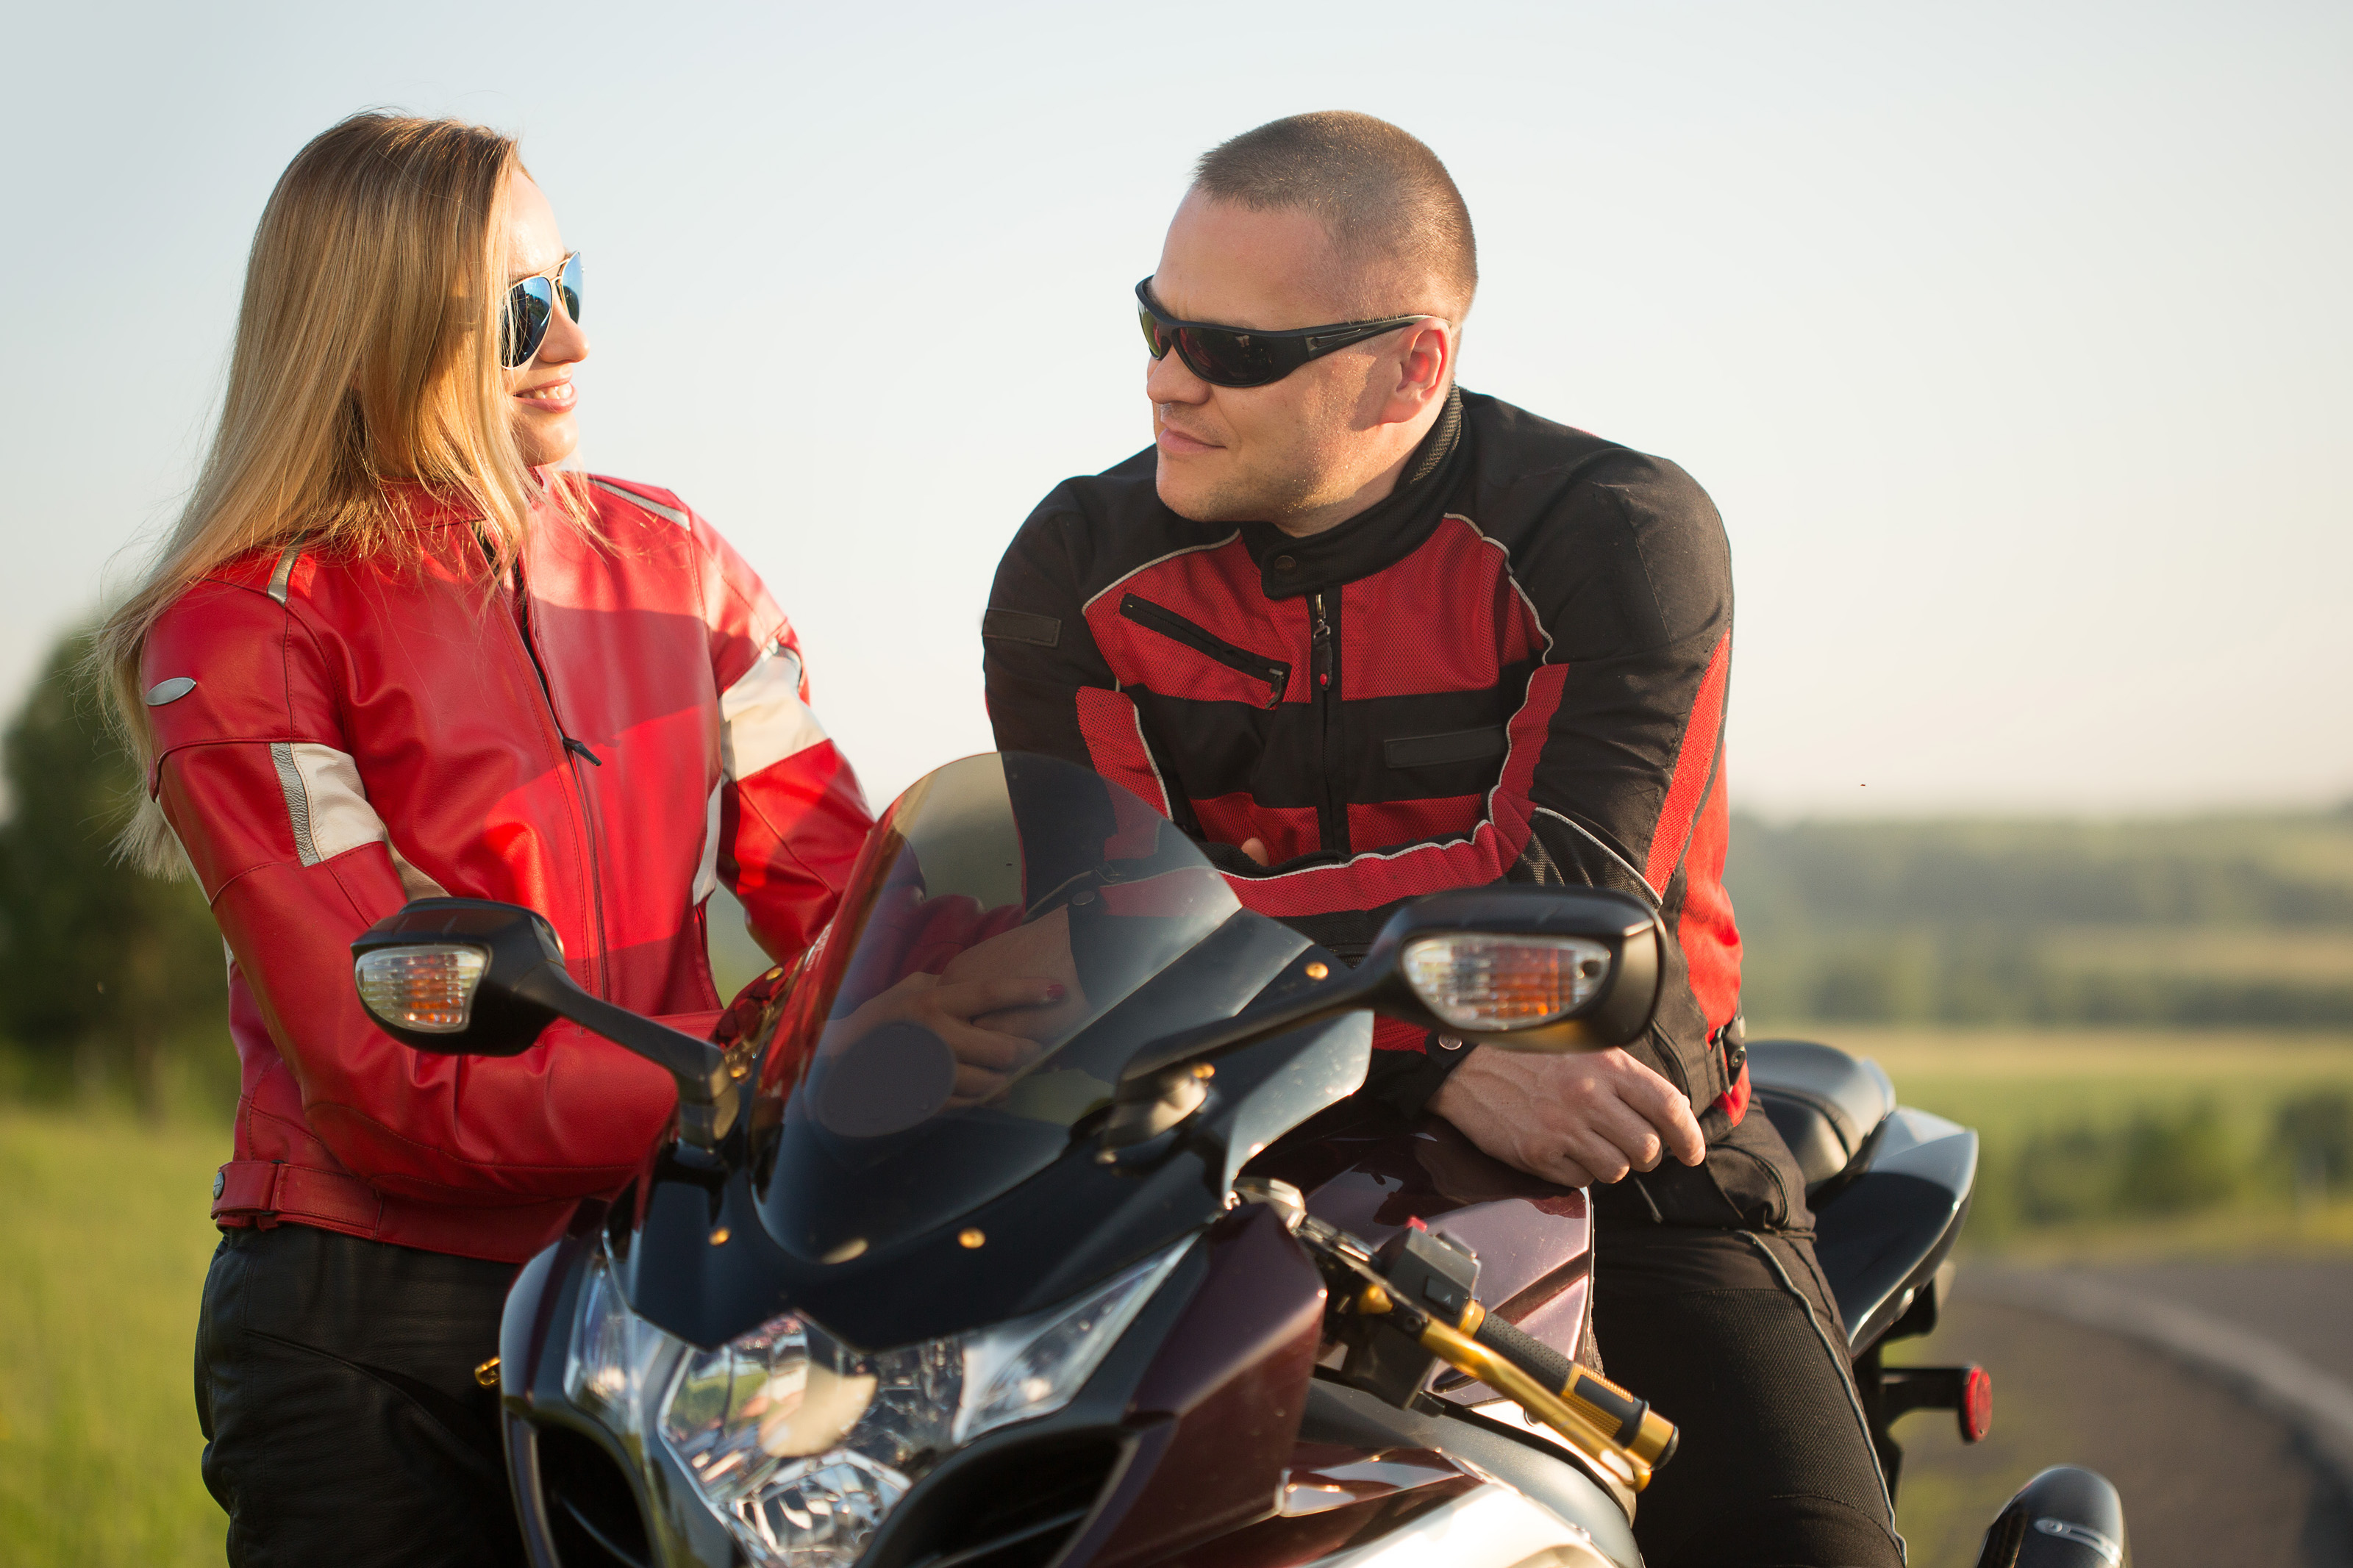 motorbike dating sites With over 15 years of efforts, the premier dating site - bikerkiss has gathered more than half a million of registered members from usa, uk, canada, australia and all over the world many special services, except for some general features you can see on other sites, are tailored to rider people who love riding motorcycle or biker singles who are.